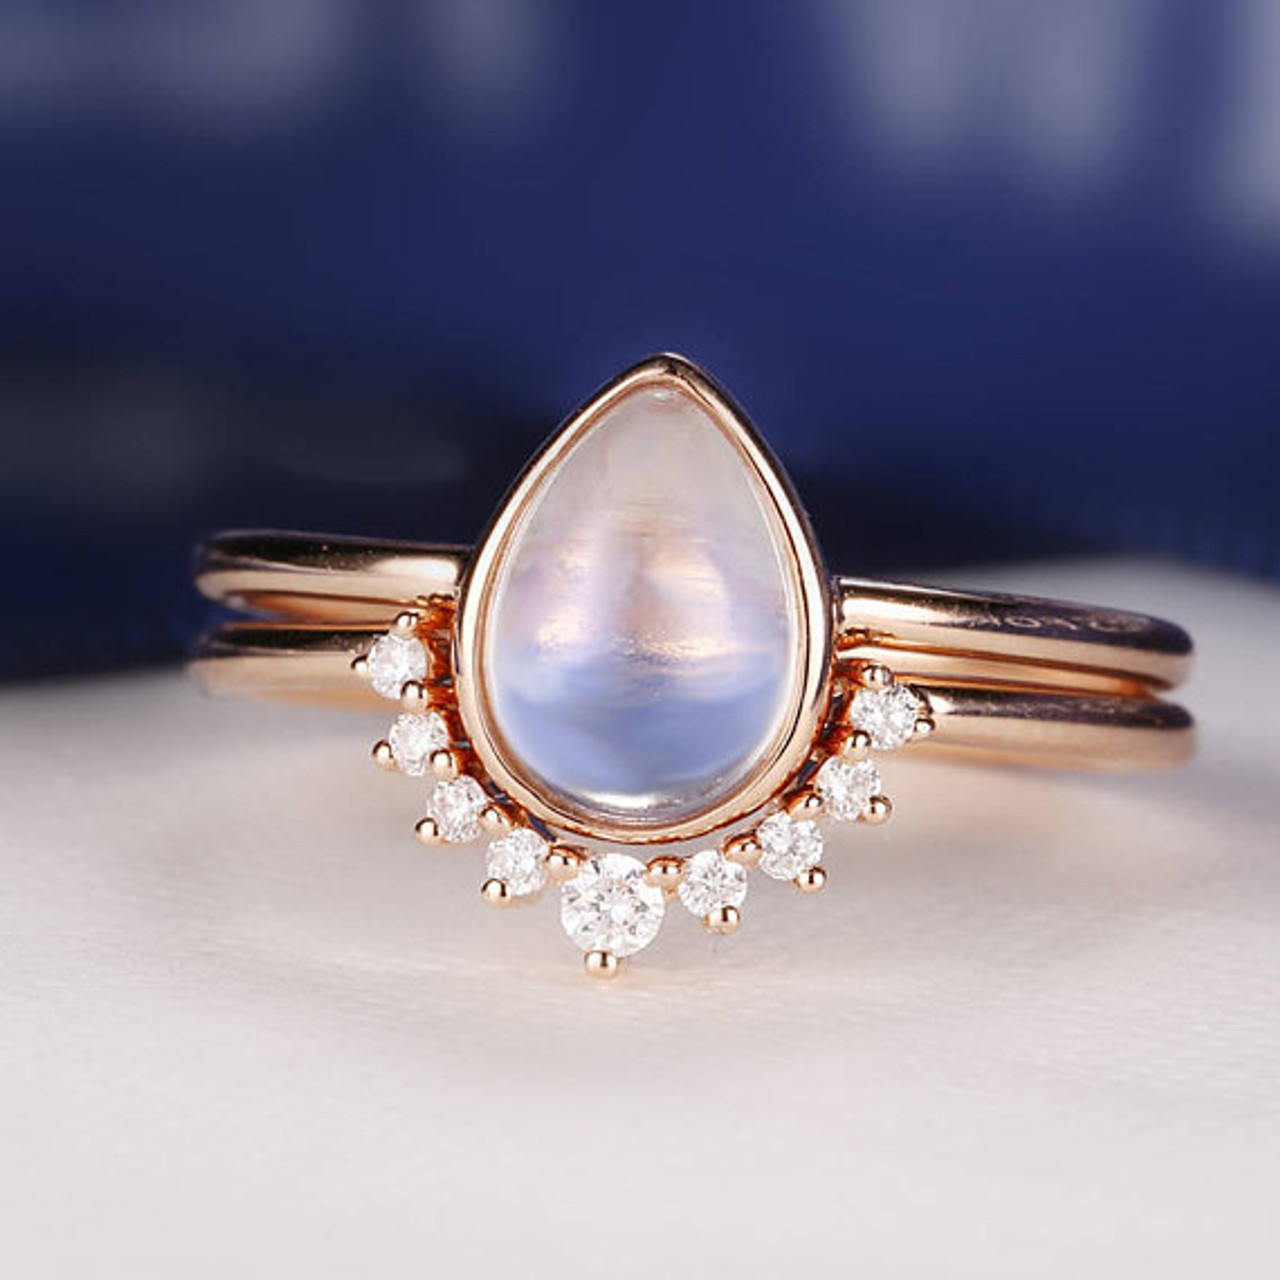 cut il birthstone delicate set stacking gemstone shaped vintage engagement jewelry moonstone rose ring pear bridal drop wedding gold diamond rings